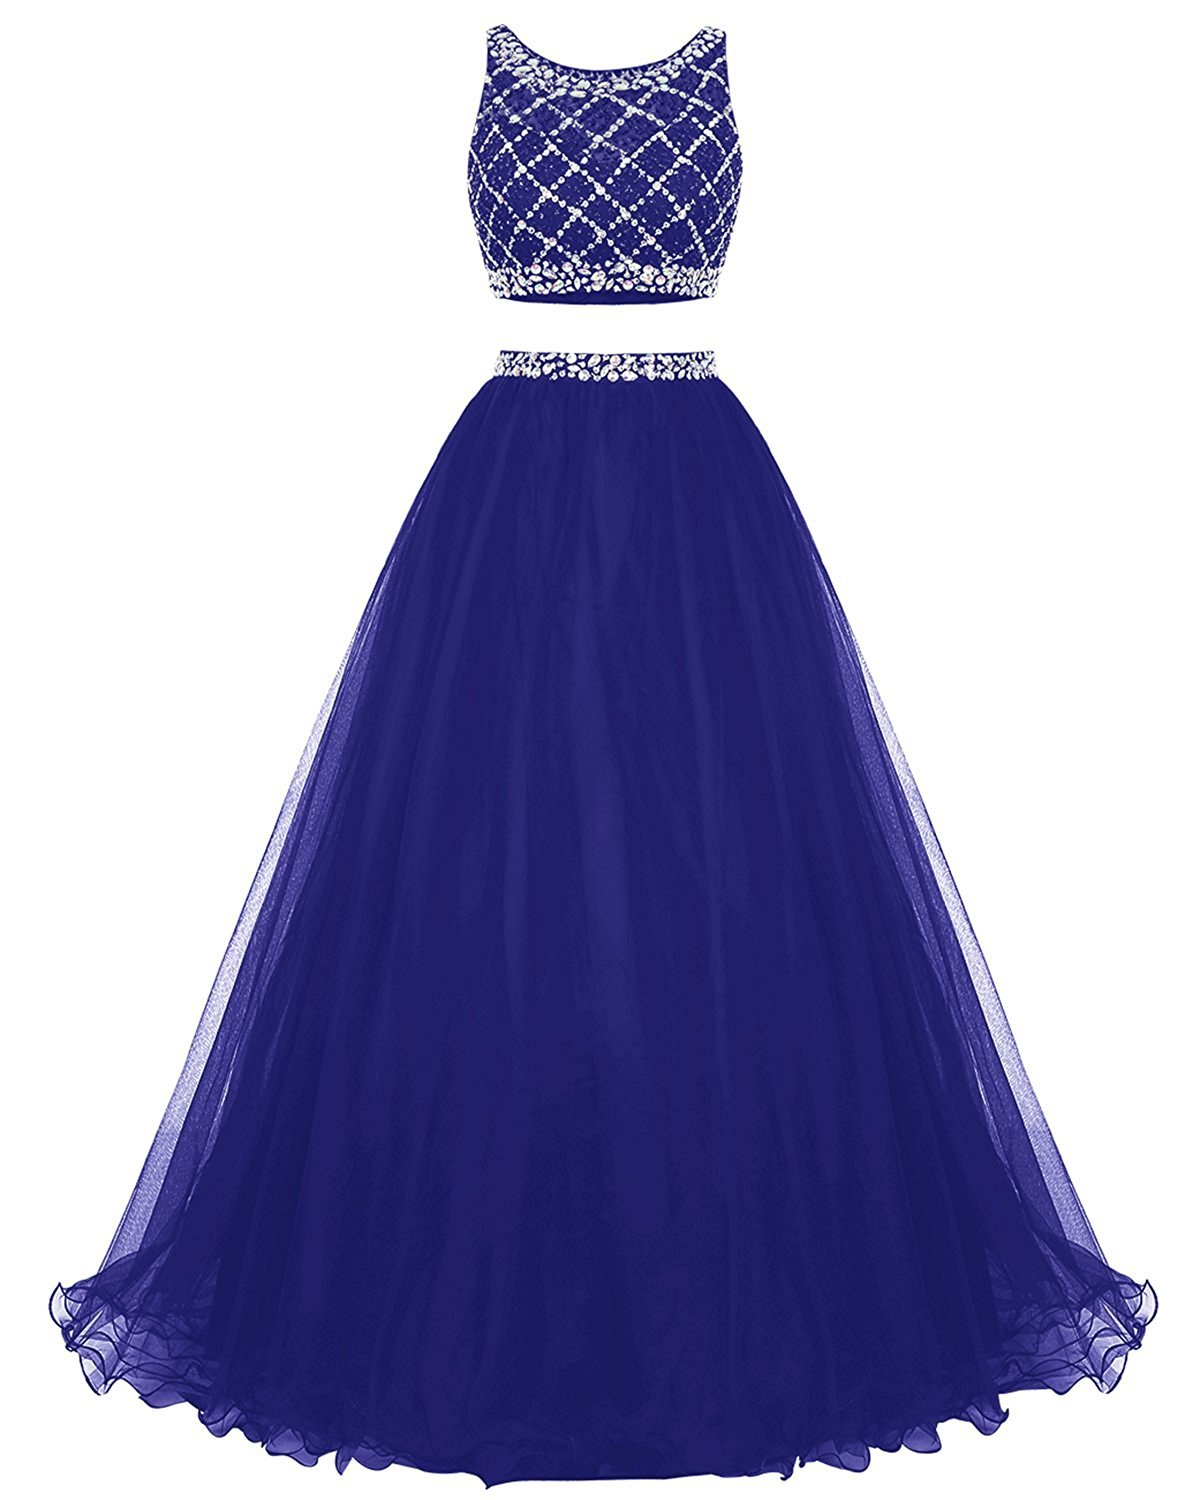 Primary image for Long Tulle Prom Dress Two Piece Beaded Party Dress Bridesmaid Dress Royal Blue